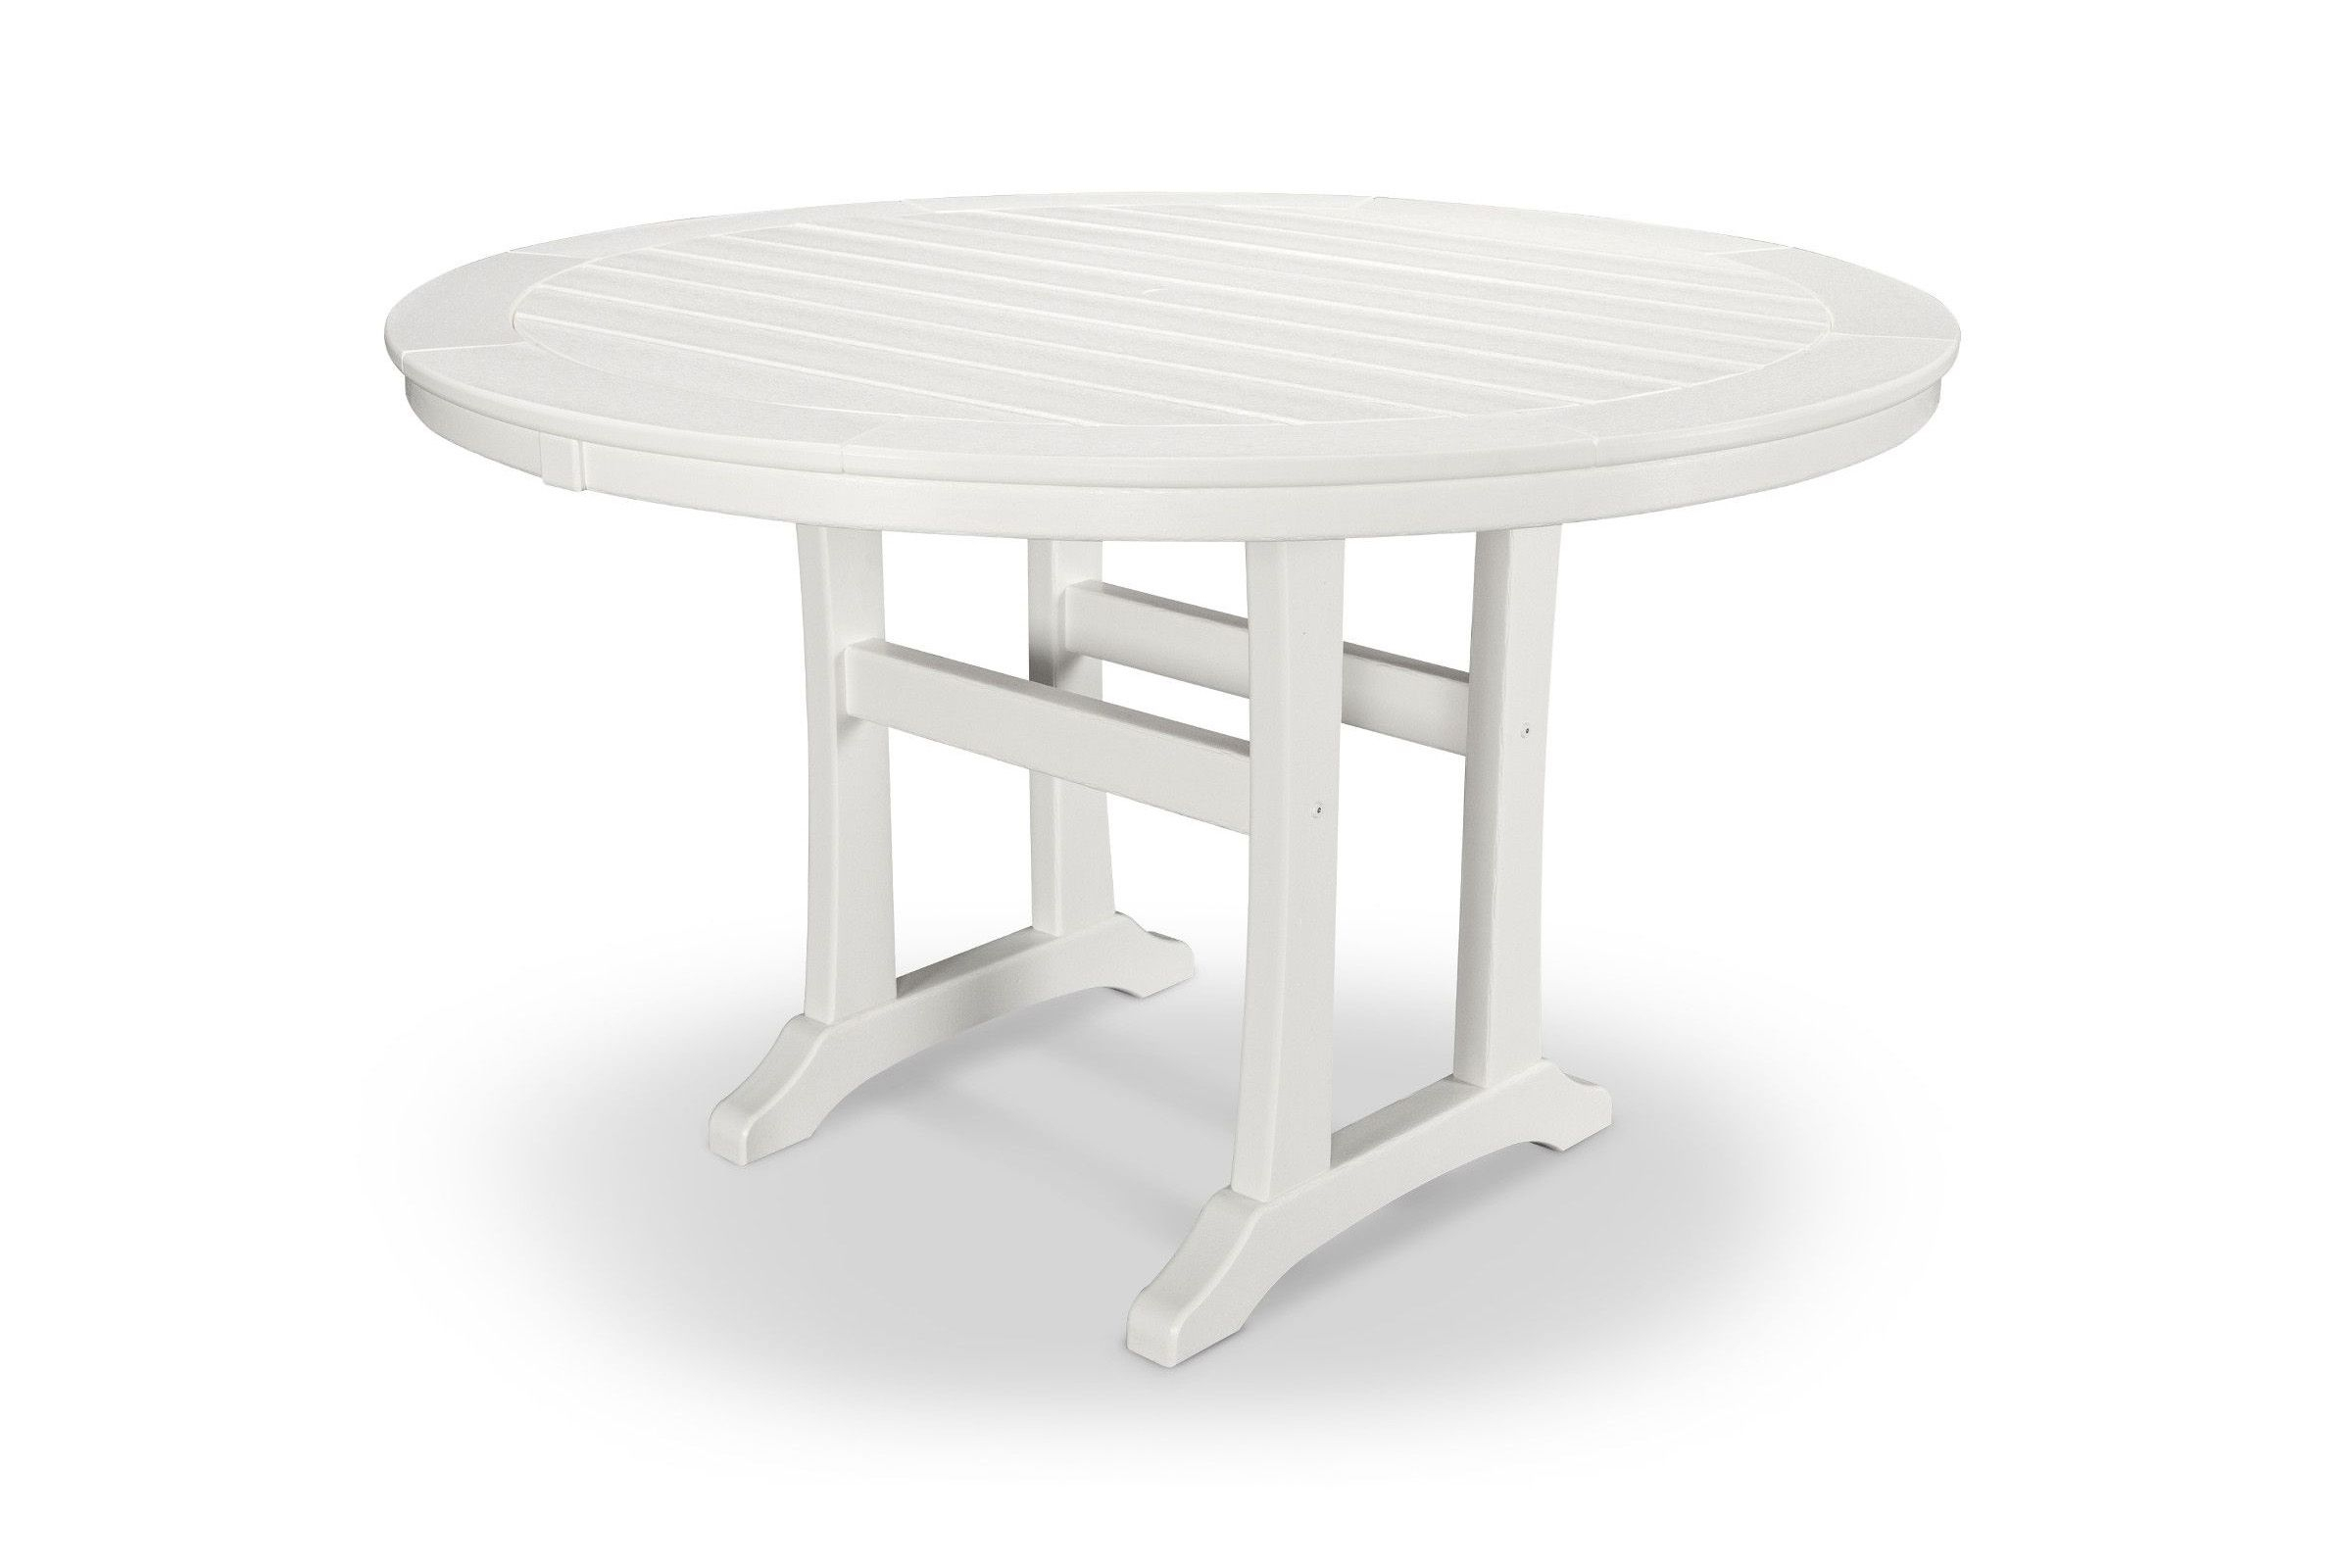 """48"""" Round Dining Table Rt448 L1 Intended For Newest Leonila 48'' Trestle Dining Tables (View 11 of 15)"""